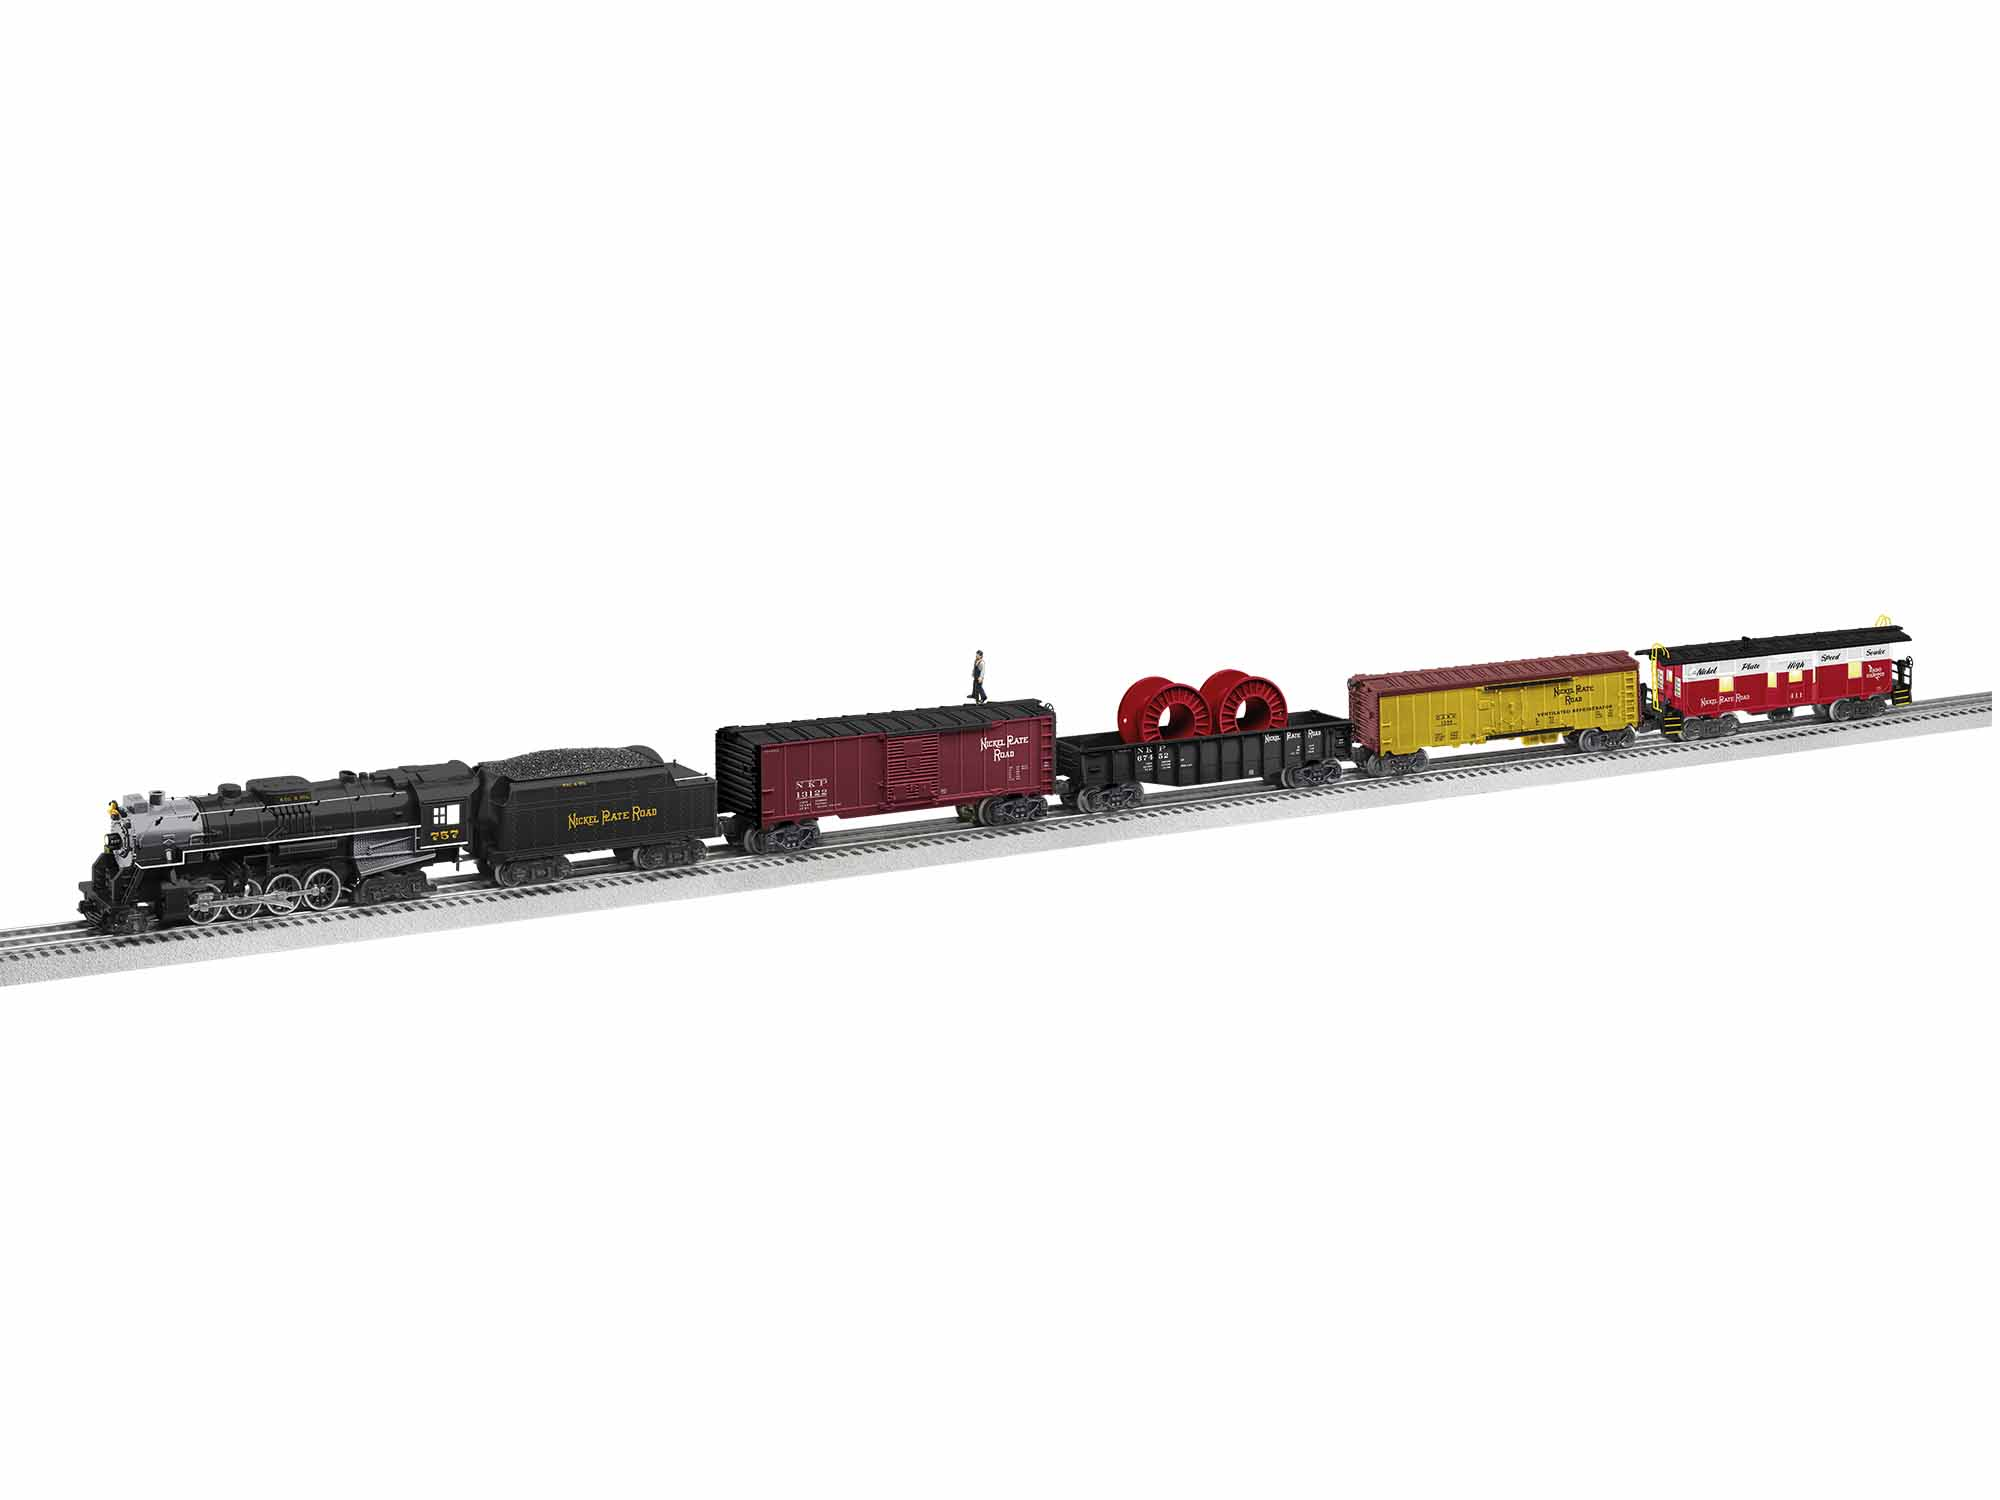 Lionel 1922020 O Berkshire 2-8-4 Fast Freight Train-Only Set 3-Rail LionChief+ 2.0 Nickel Plate Road Loco and 4 Cars